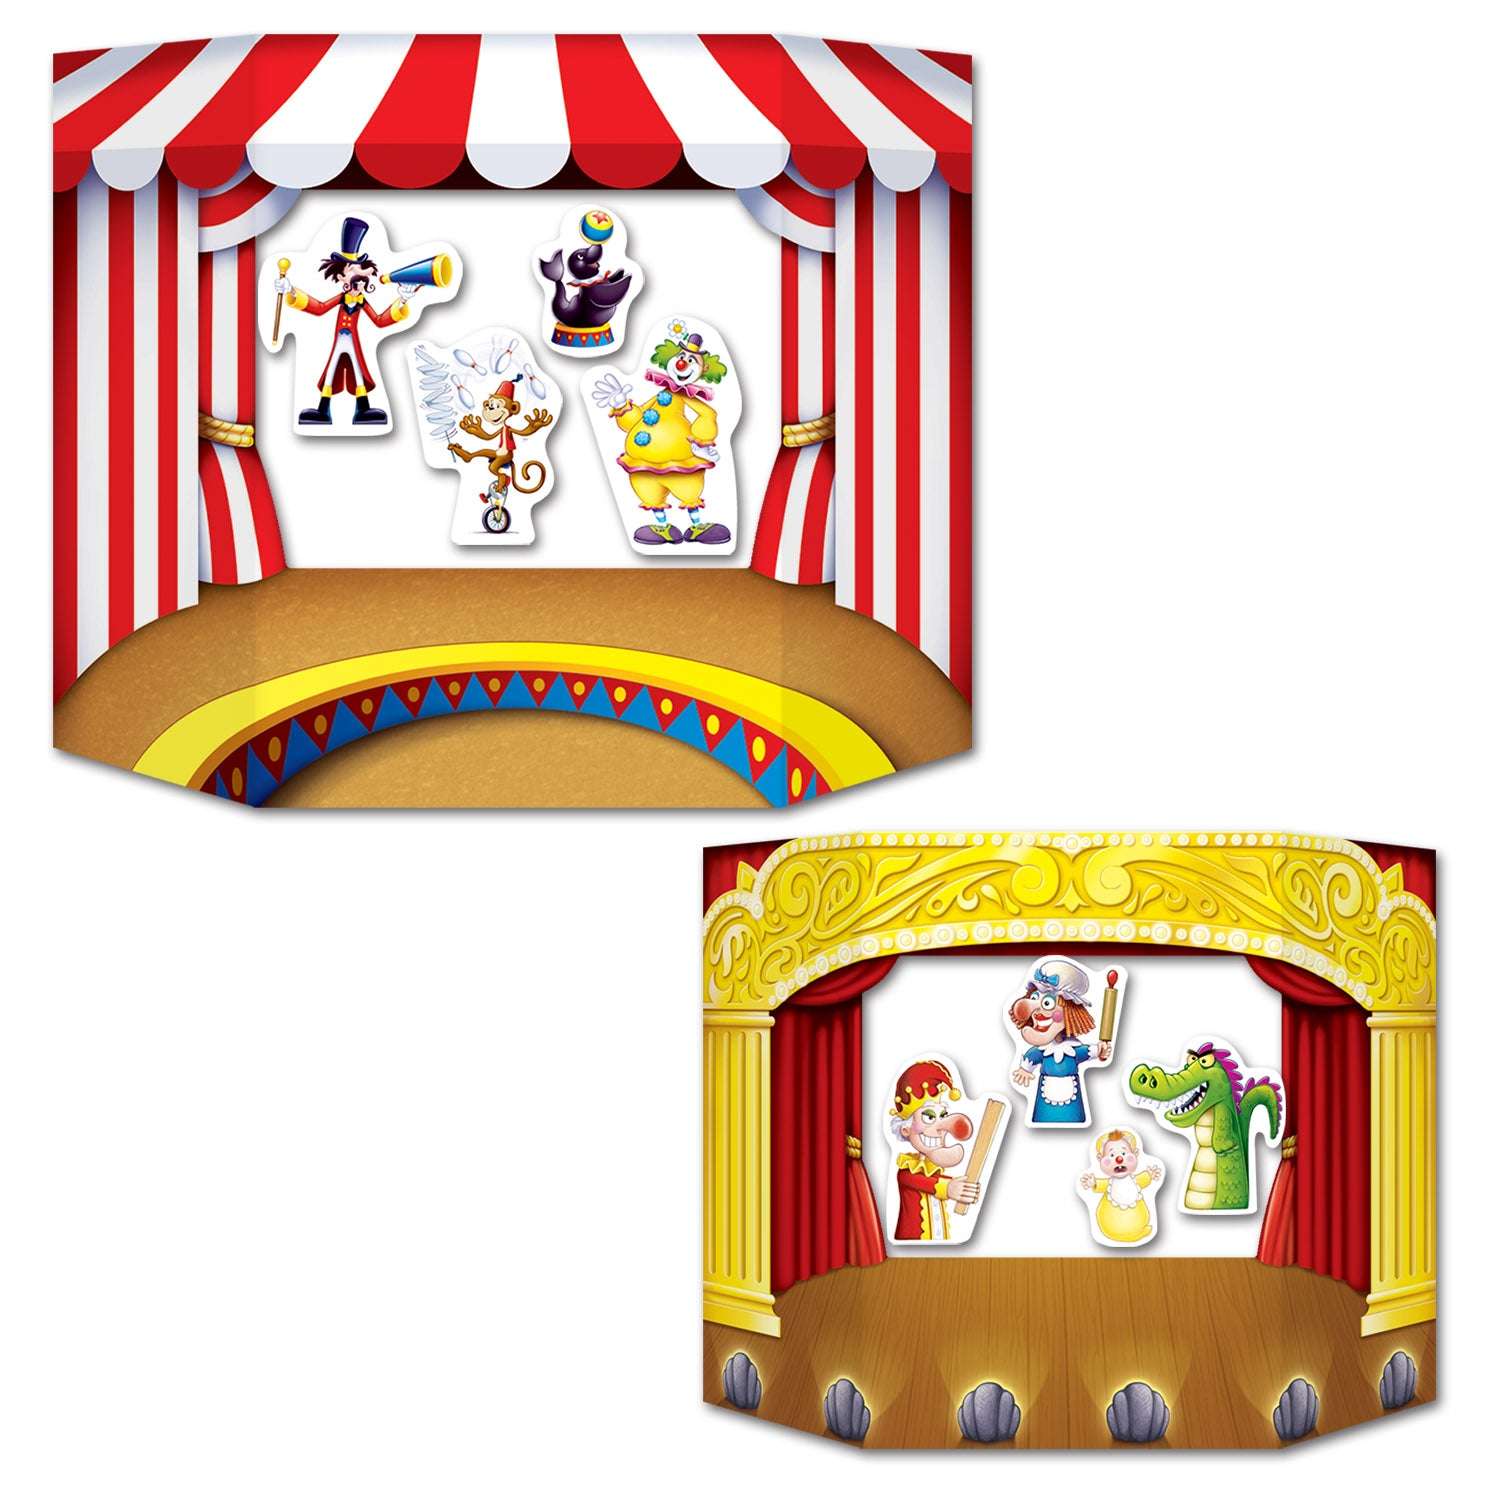 Puppet Show Theater Photo Prop by Beistle - Birthday Party Supplies Decorations